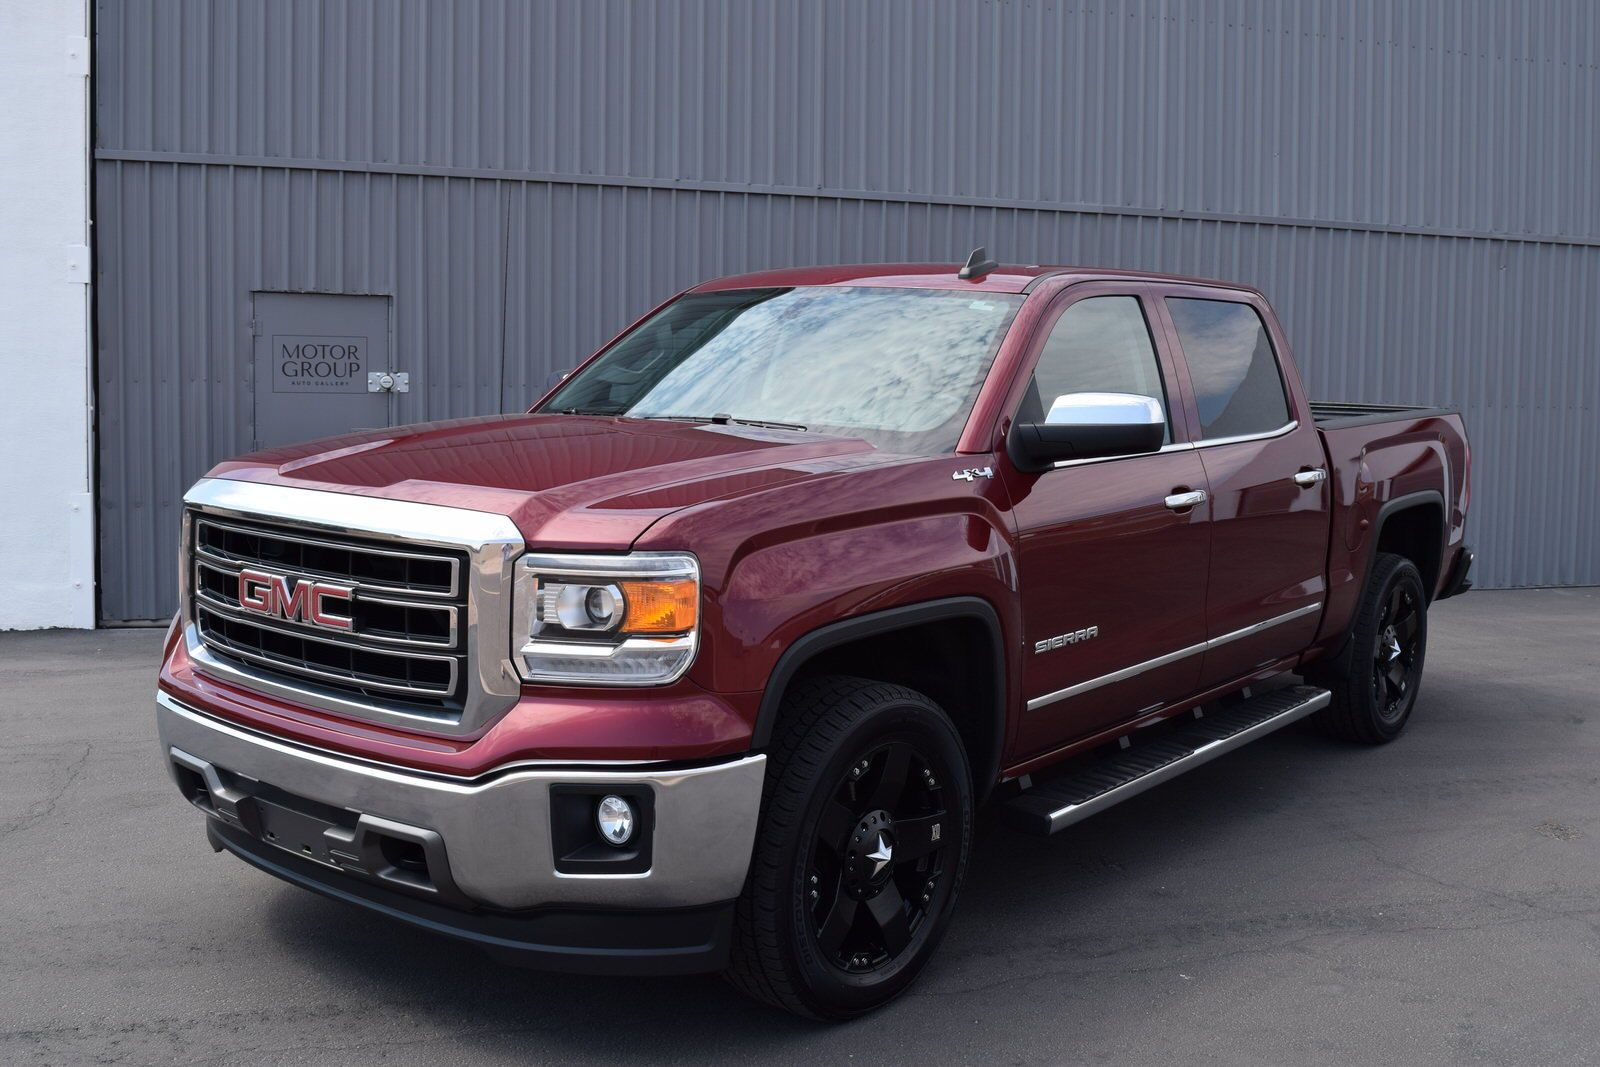 kendall nampa inventory denali at gmc in canyon crew cab the new truck